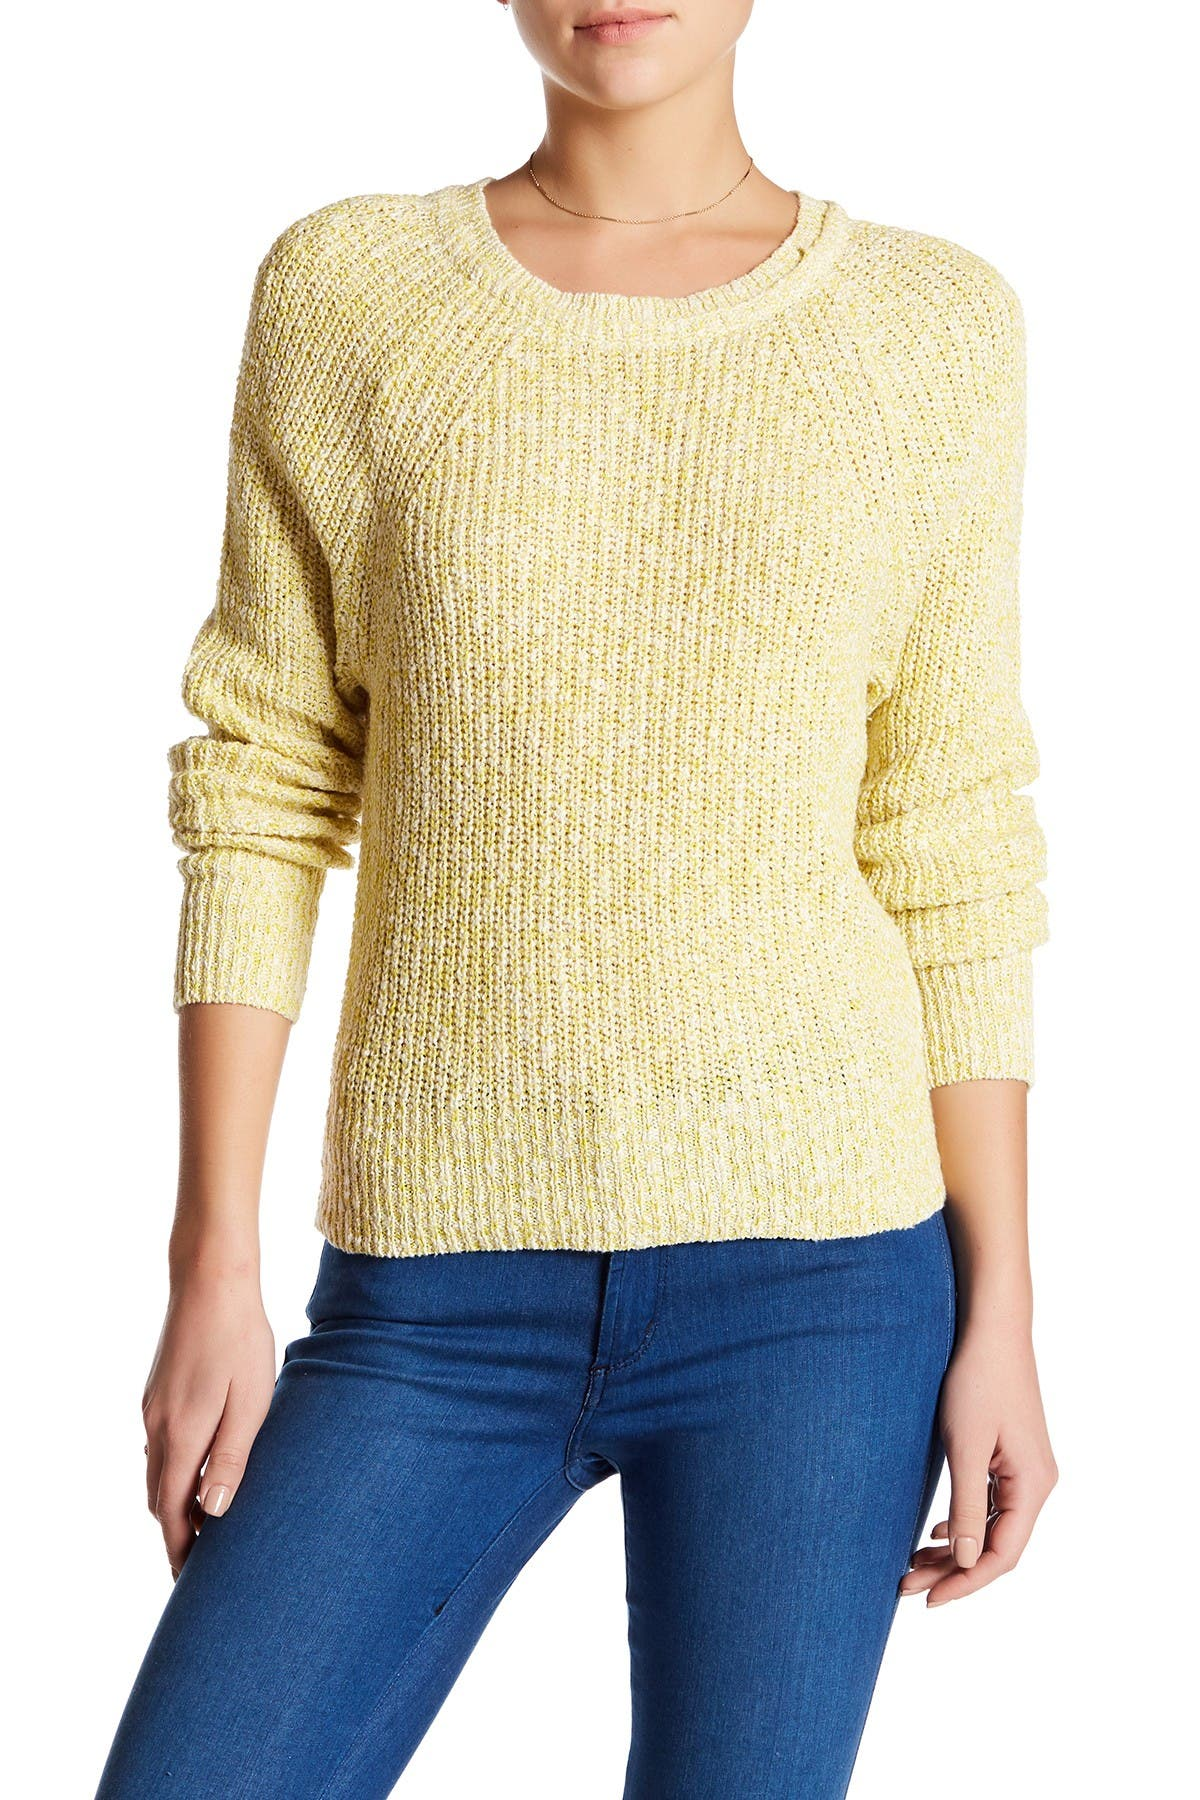 Image of Urban Outfitters Electric City Pullover Sweater